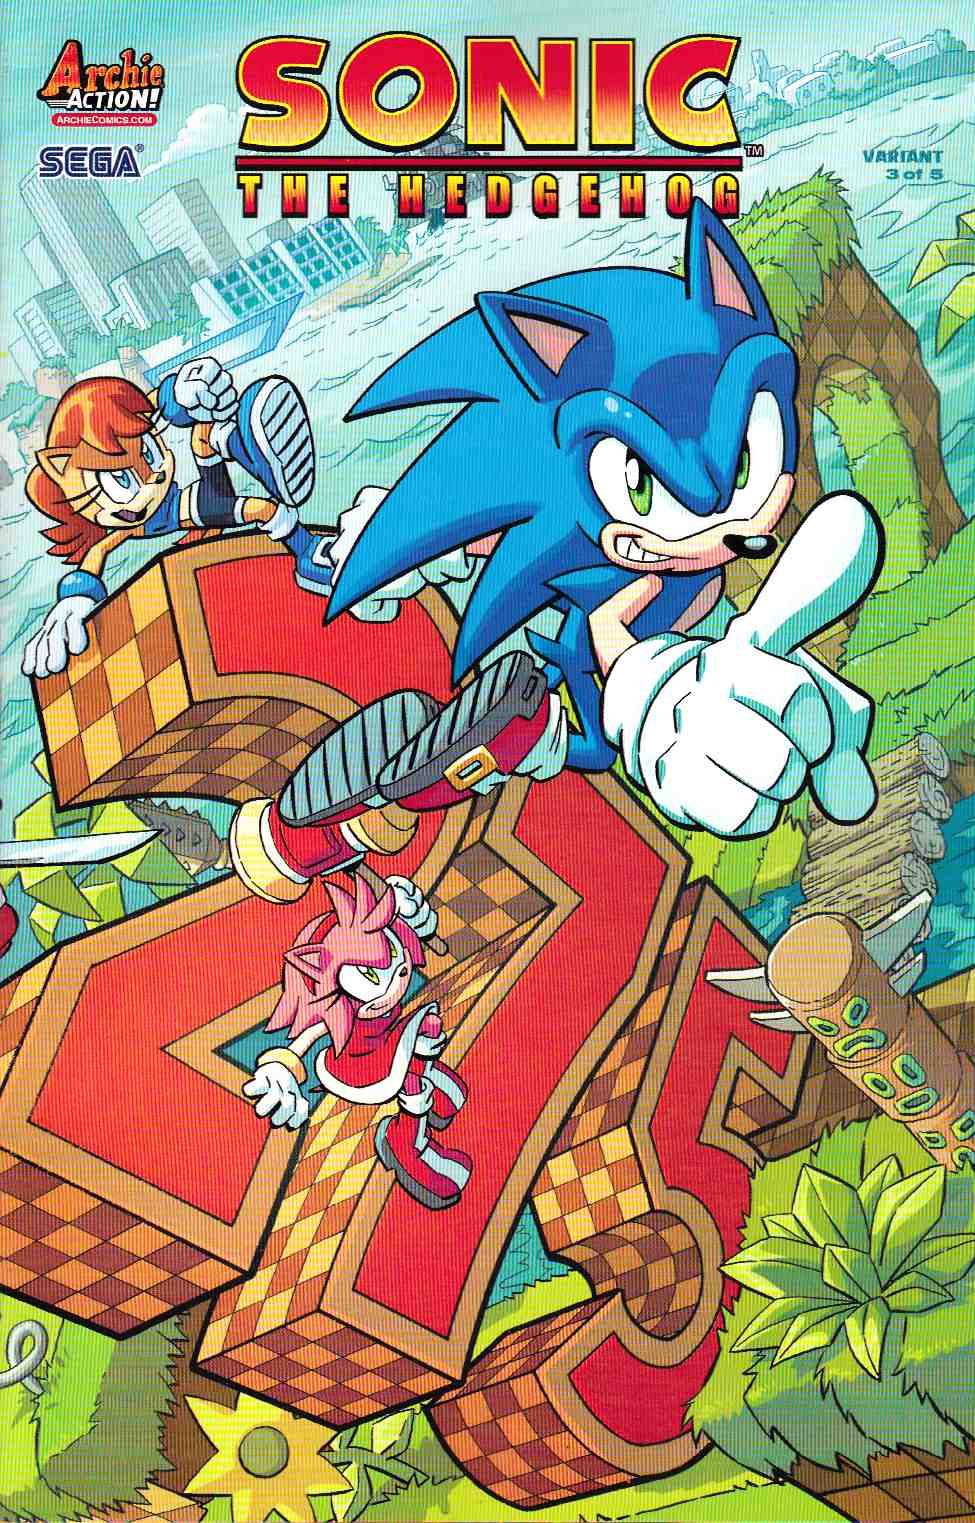 Sonic the Hedgehog #275 Yardley Wraparound Variant Cover [Archie Comic] THUMBNAIL